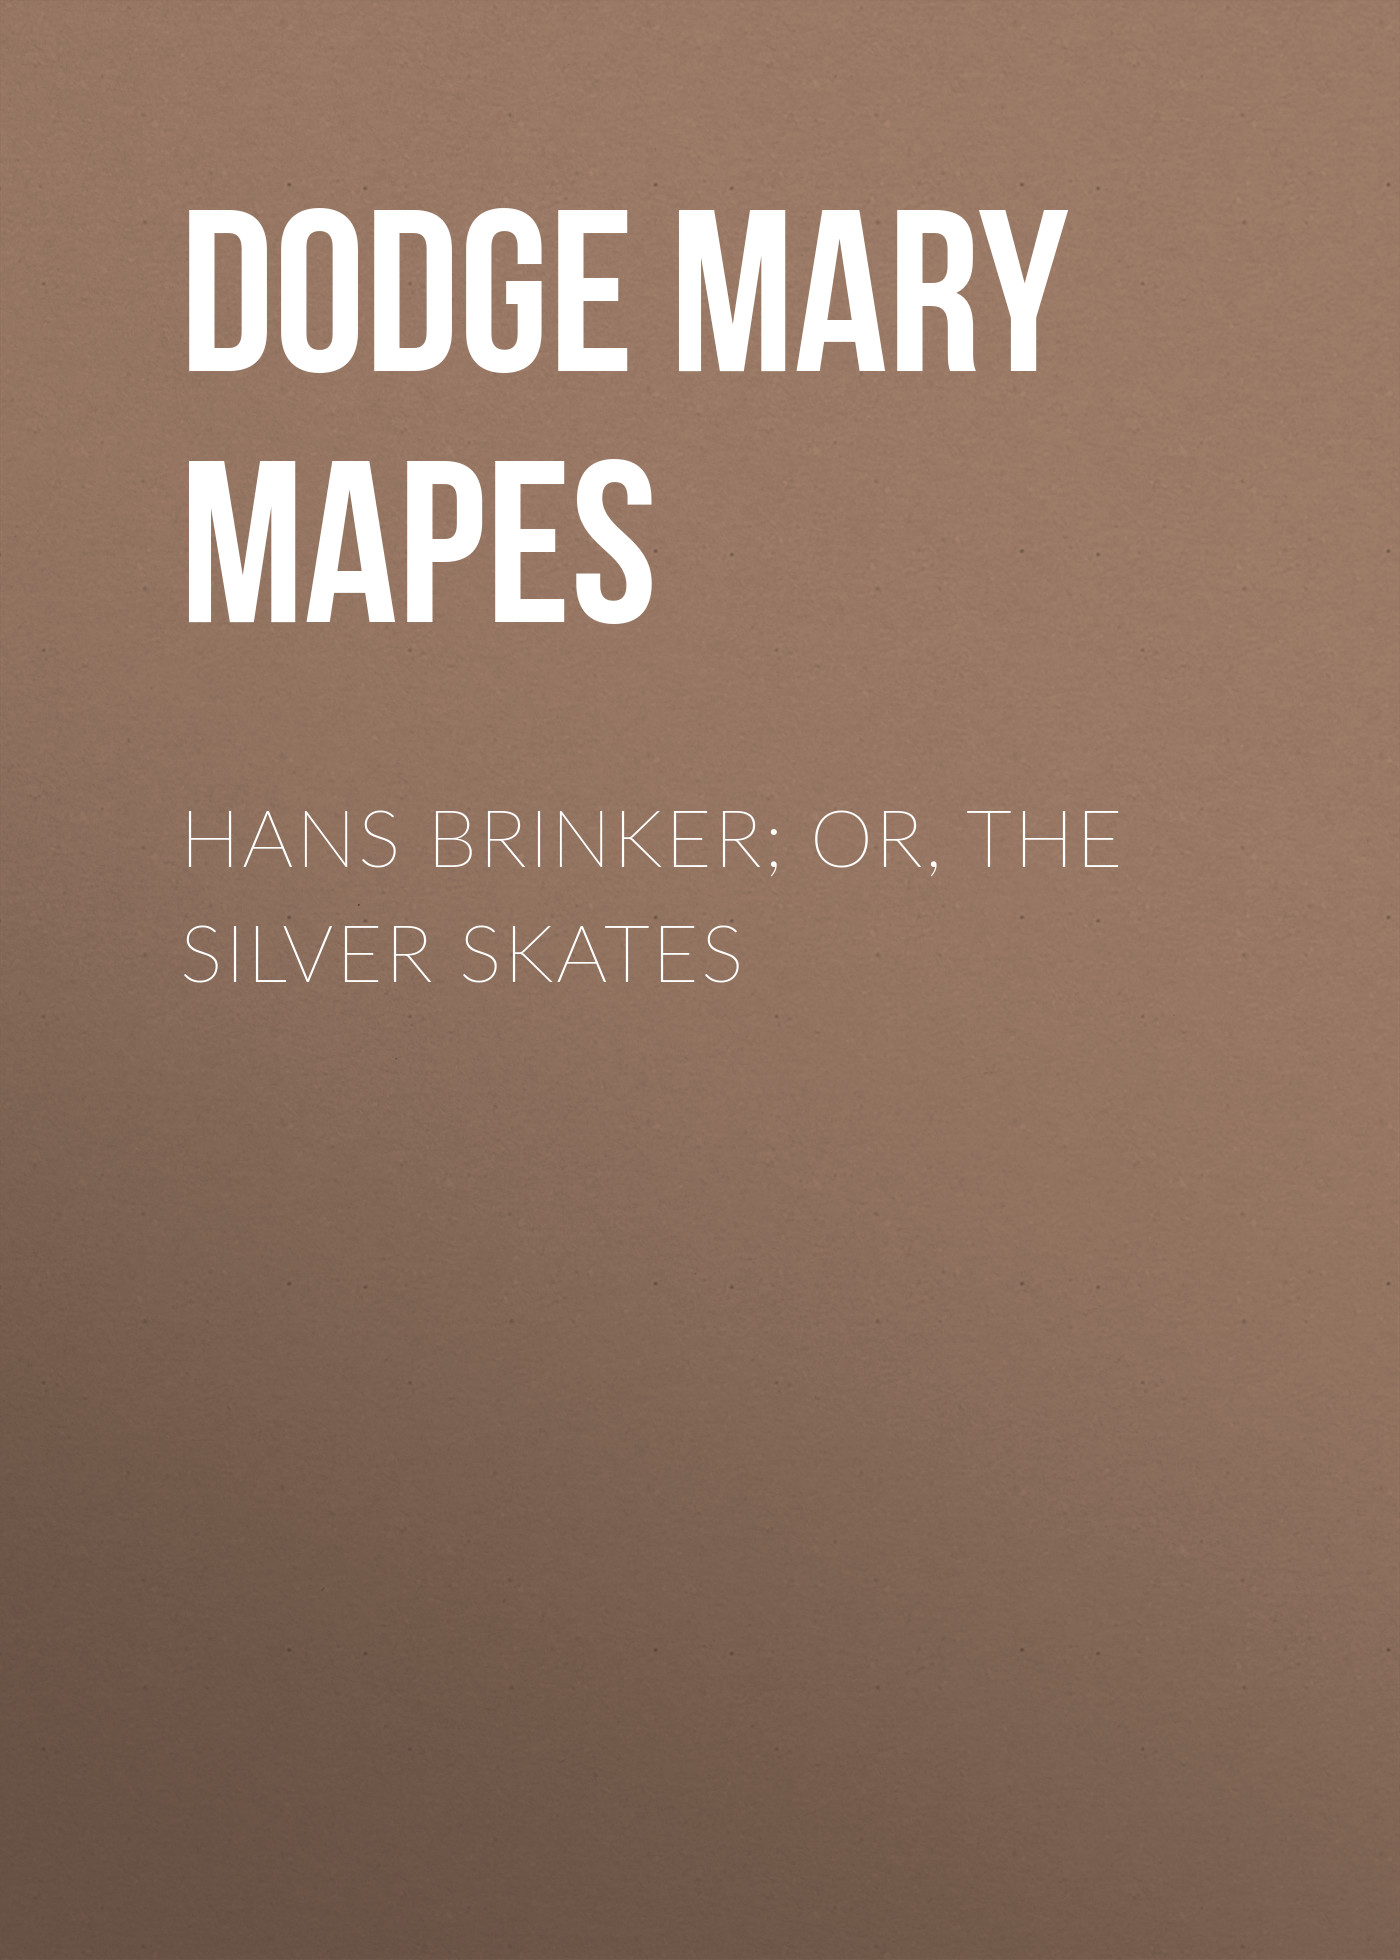 Dodge Mary Mapes Hans Brinker; Or, The Silver Skates mary brendan the silver squire